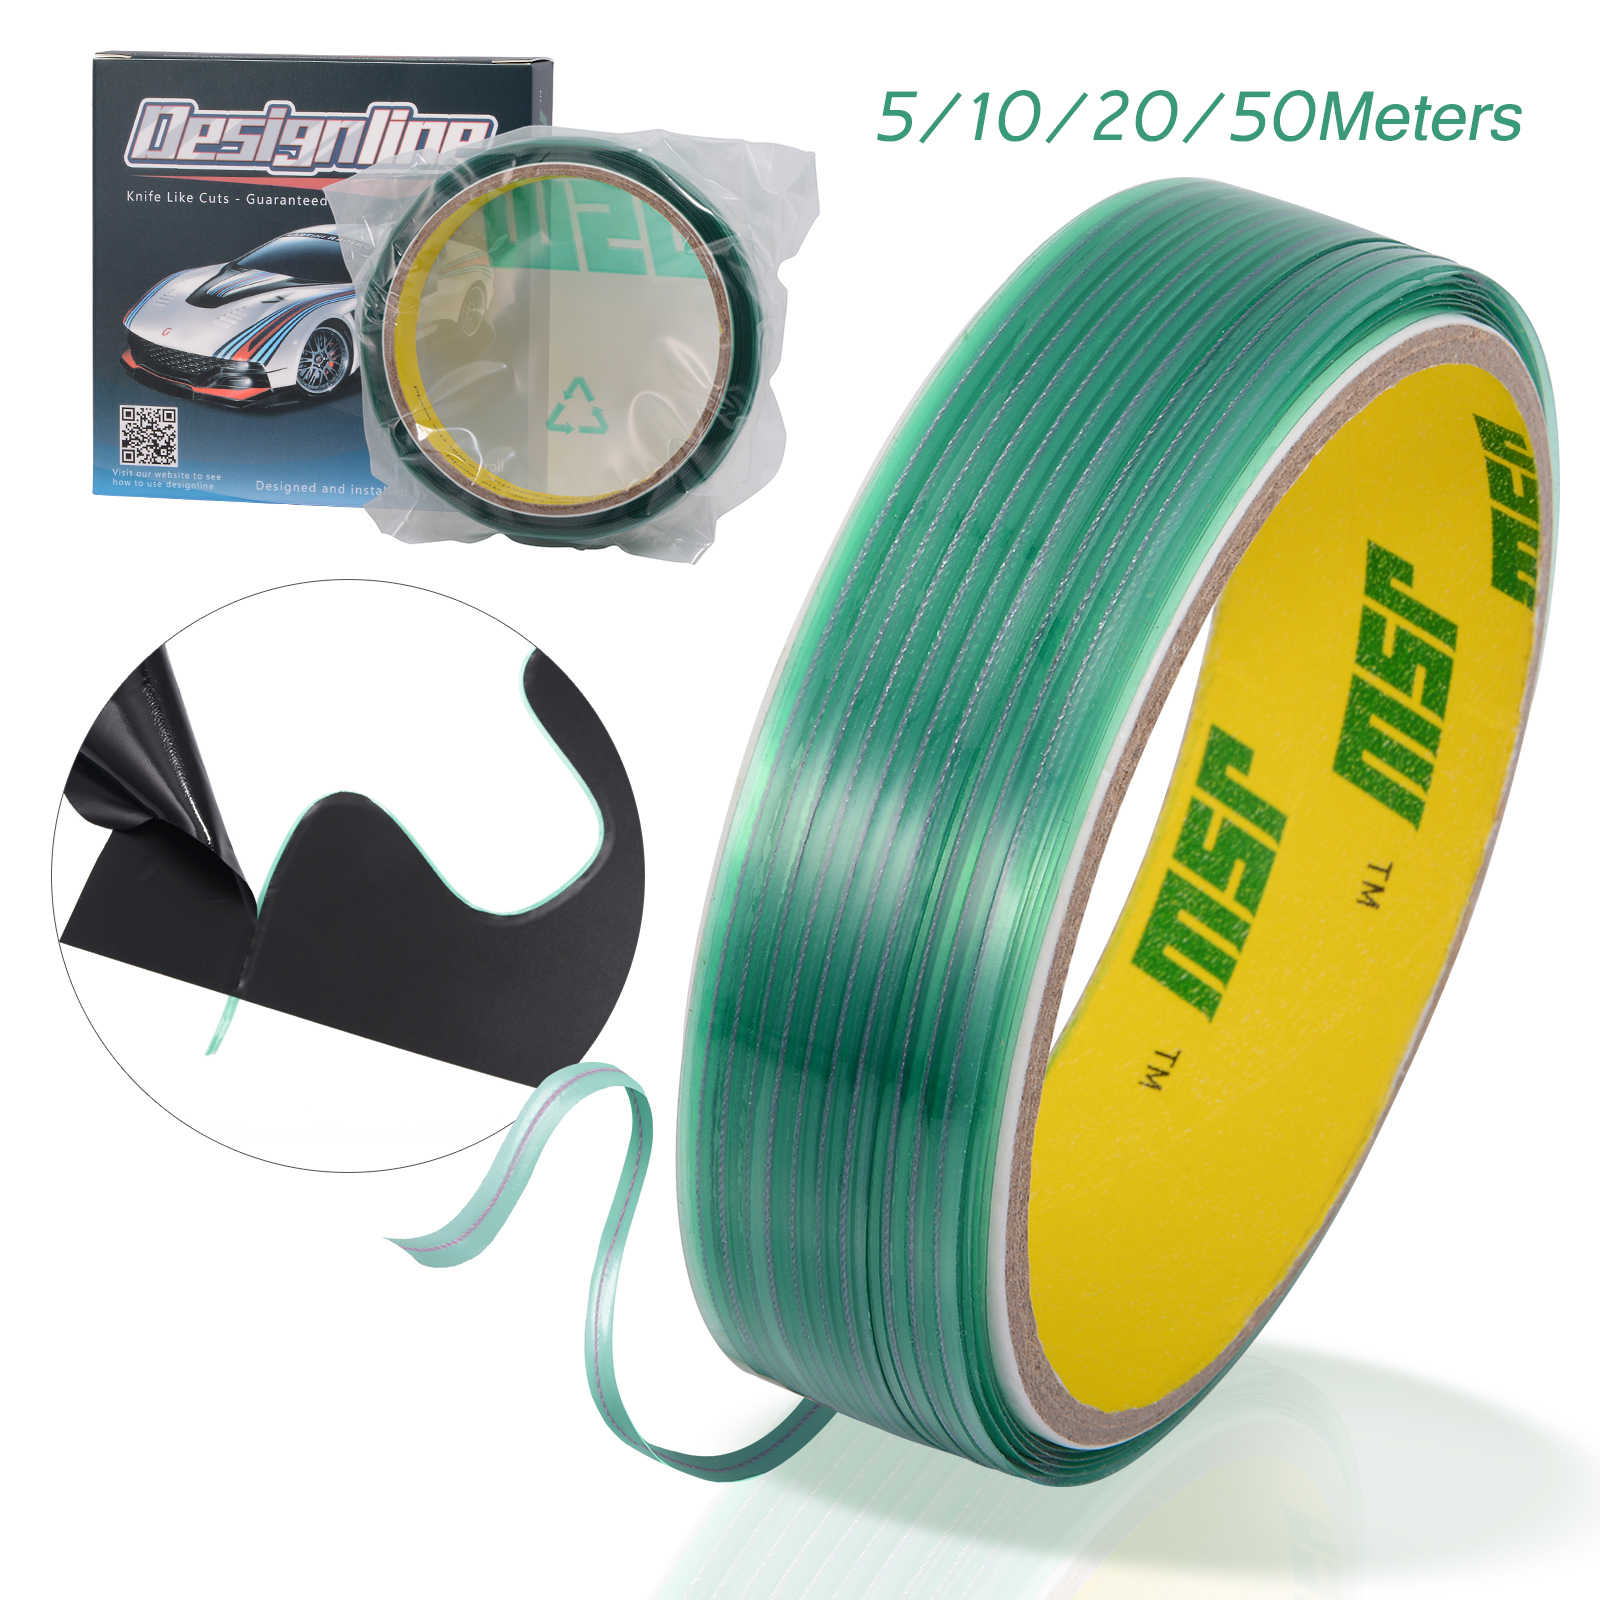 Ehdis 5/10/20/50 M Knifeless Tape Ontwerp Lijn Auto Wrap Vinyl Film Sticker Snijden Tape window Tint Decals Cutter Wikkelen Tool